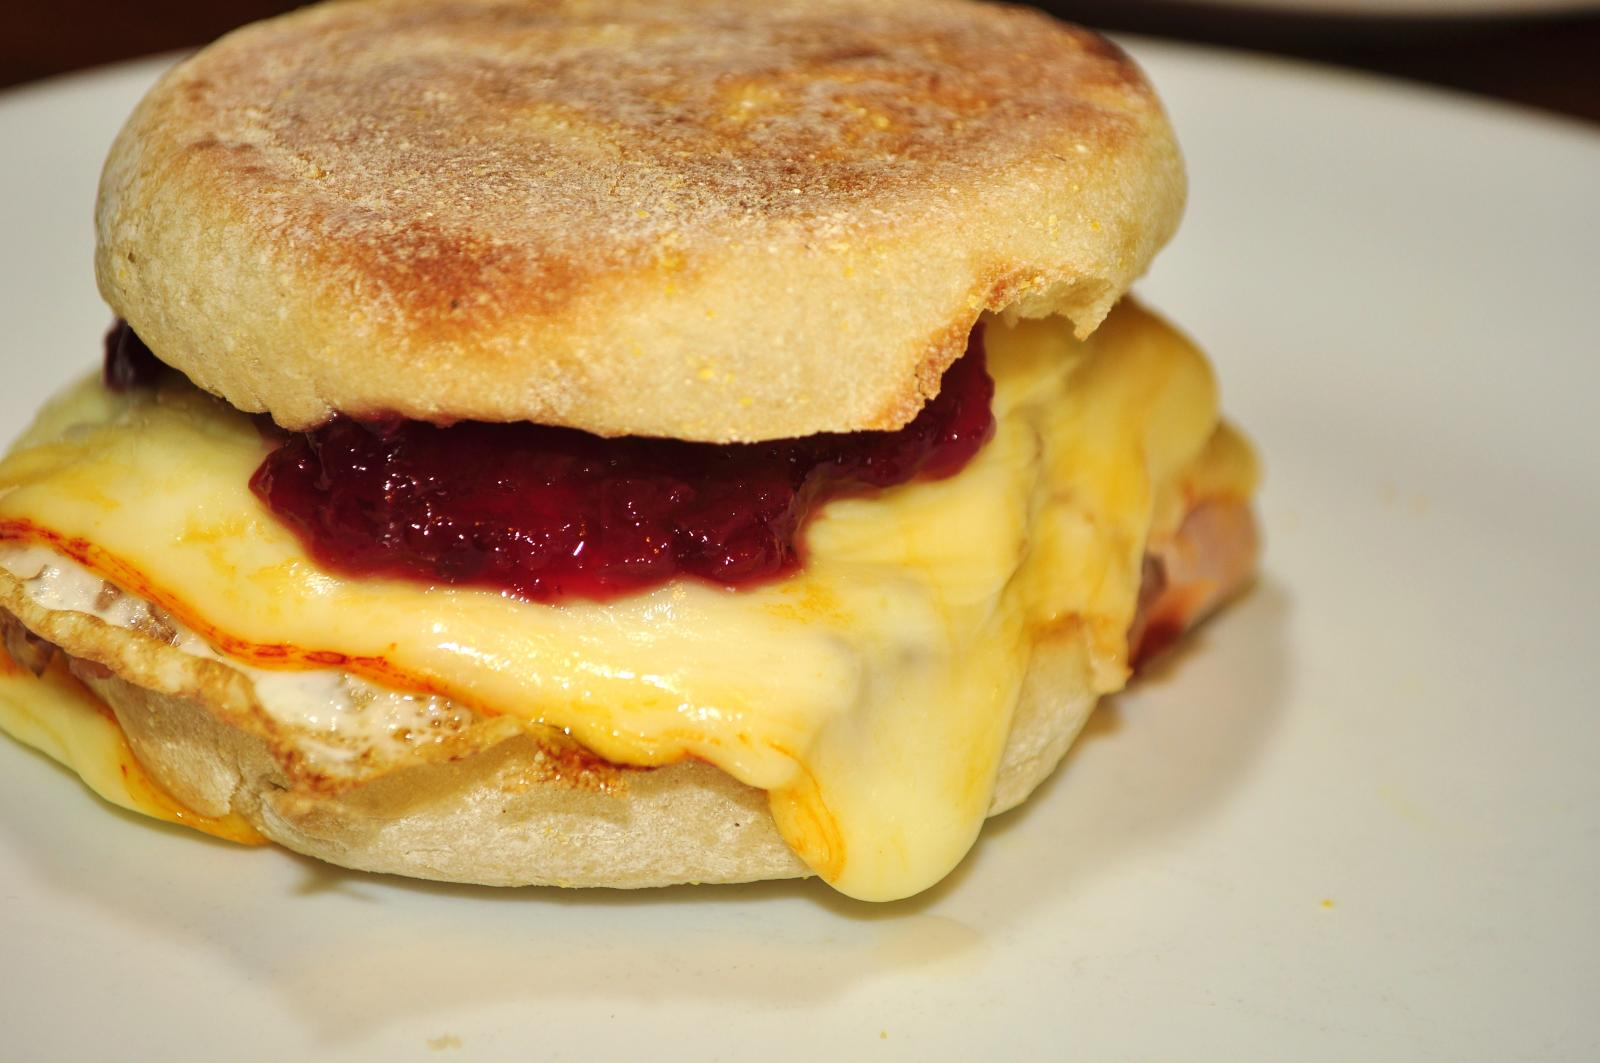 fileok you want a ham egg and cheese muffin with